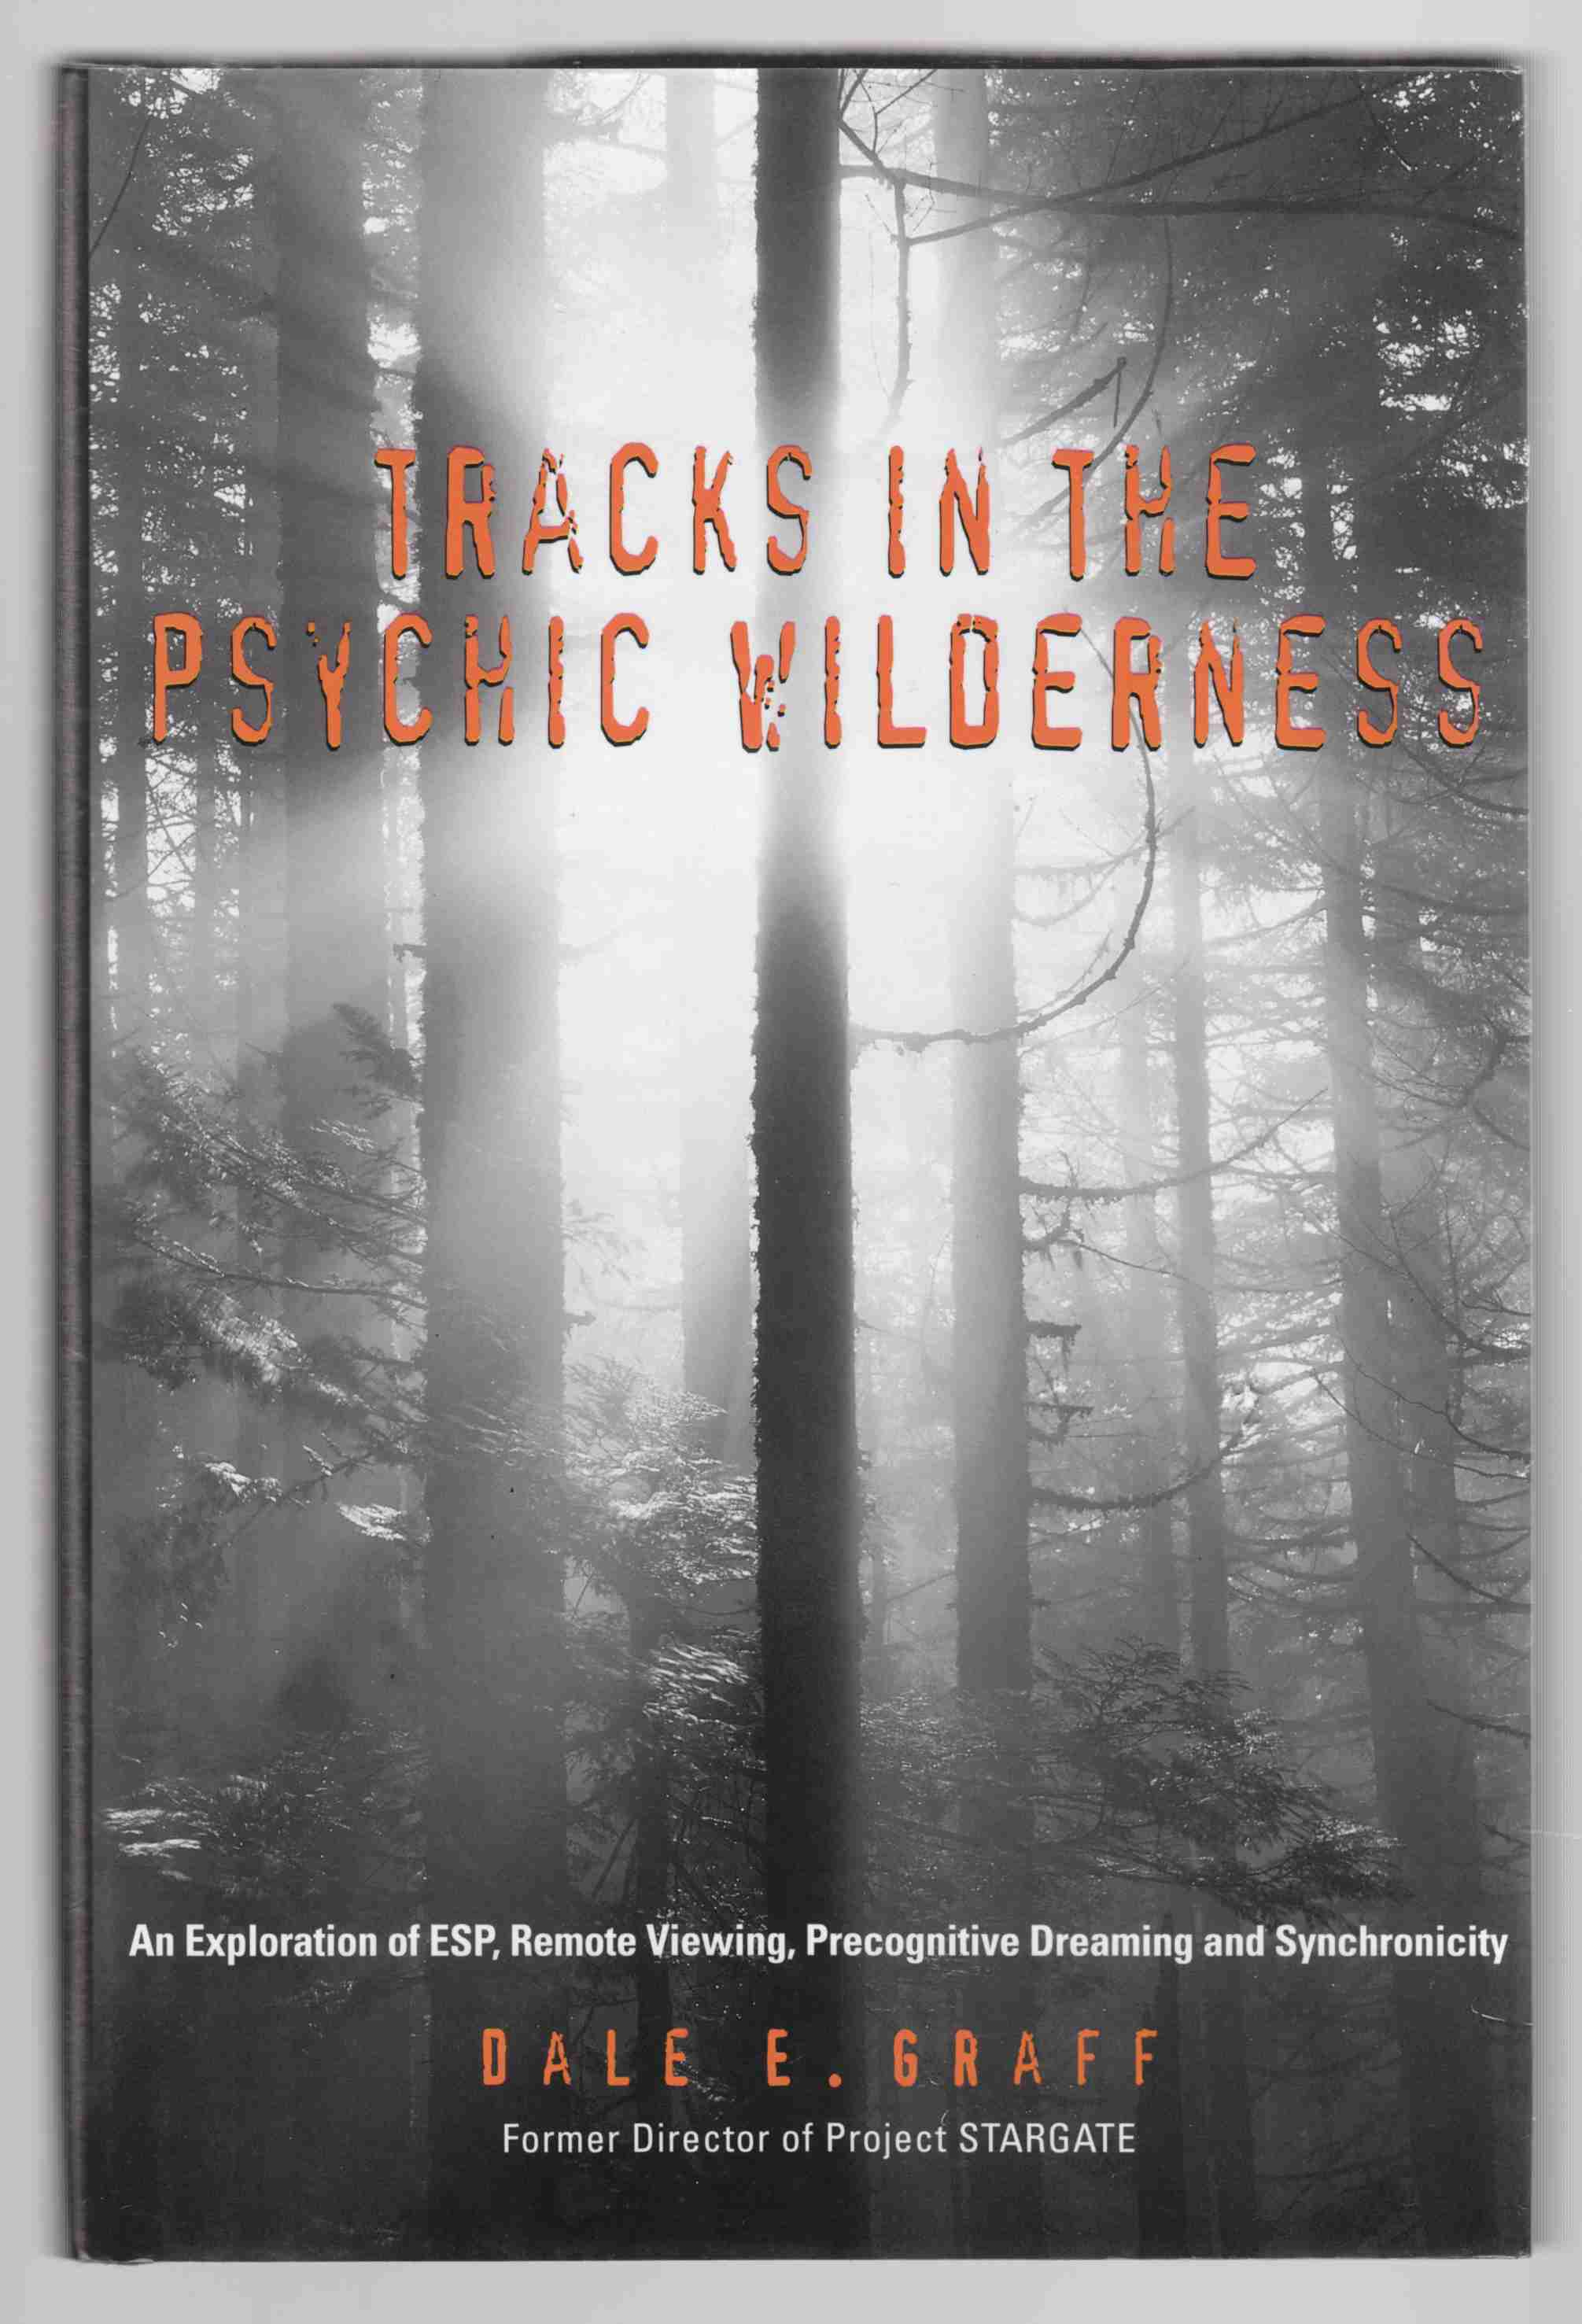 Image for Tracks in the Psychic Wilderness An Exploration of Remote Viewing, ESP, Precognitive Dreaming, and Synchronicity